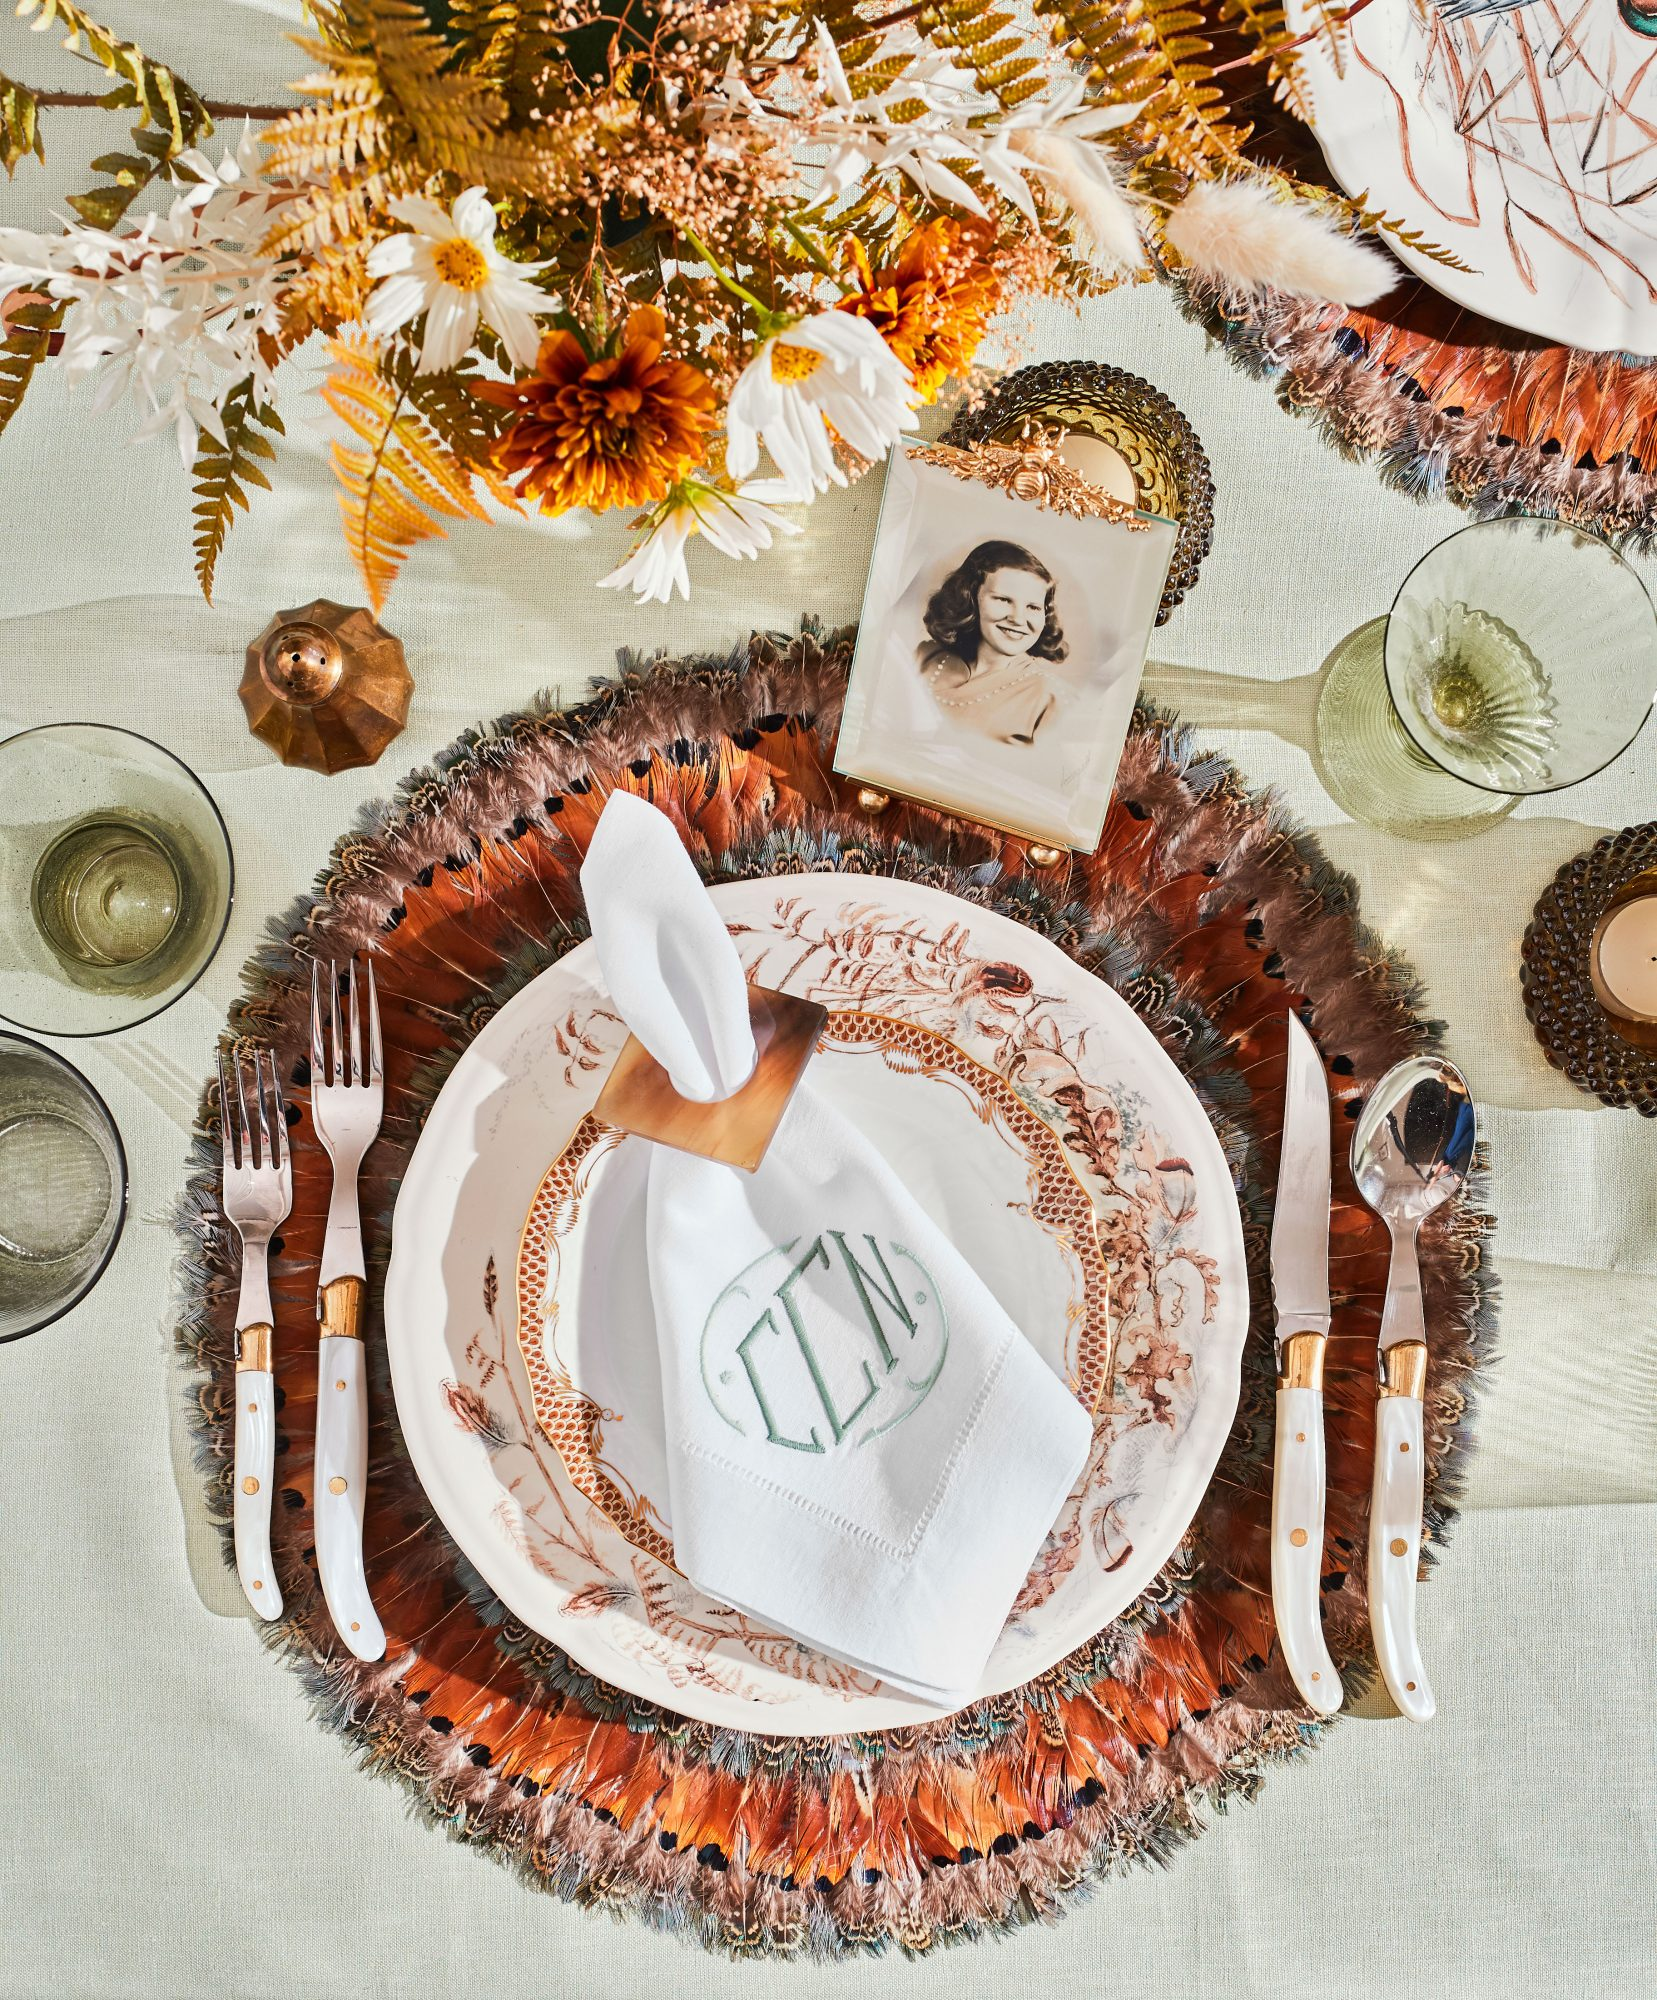 Thanksgiving Table Setting with Feathered Placemats, Monogrammed Napkins, and Photos as Place Cards